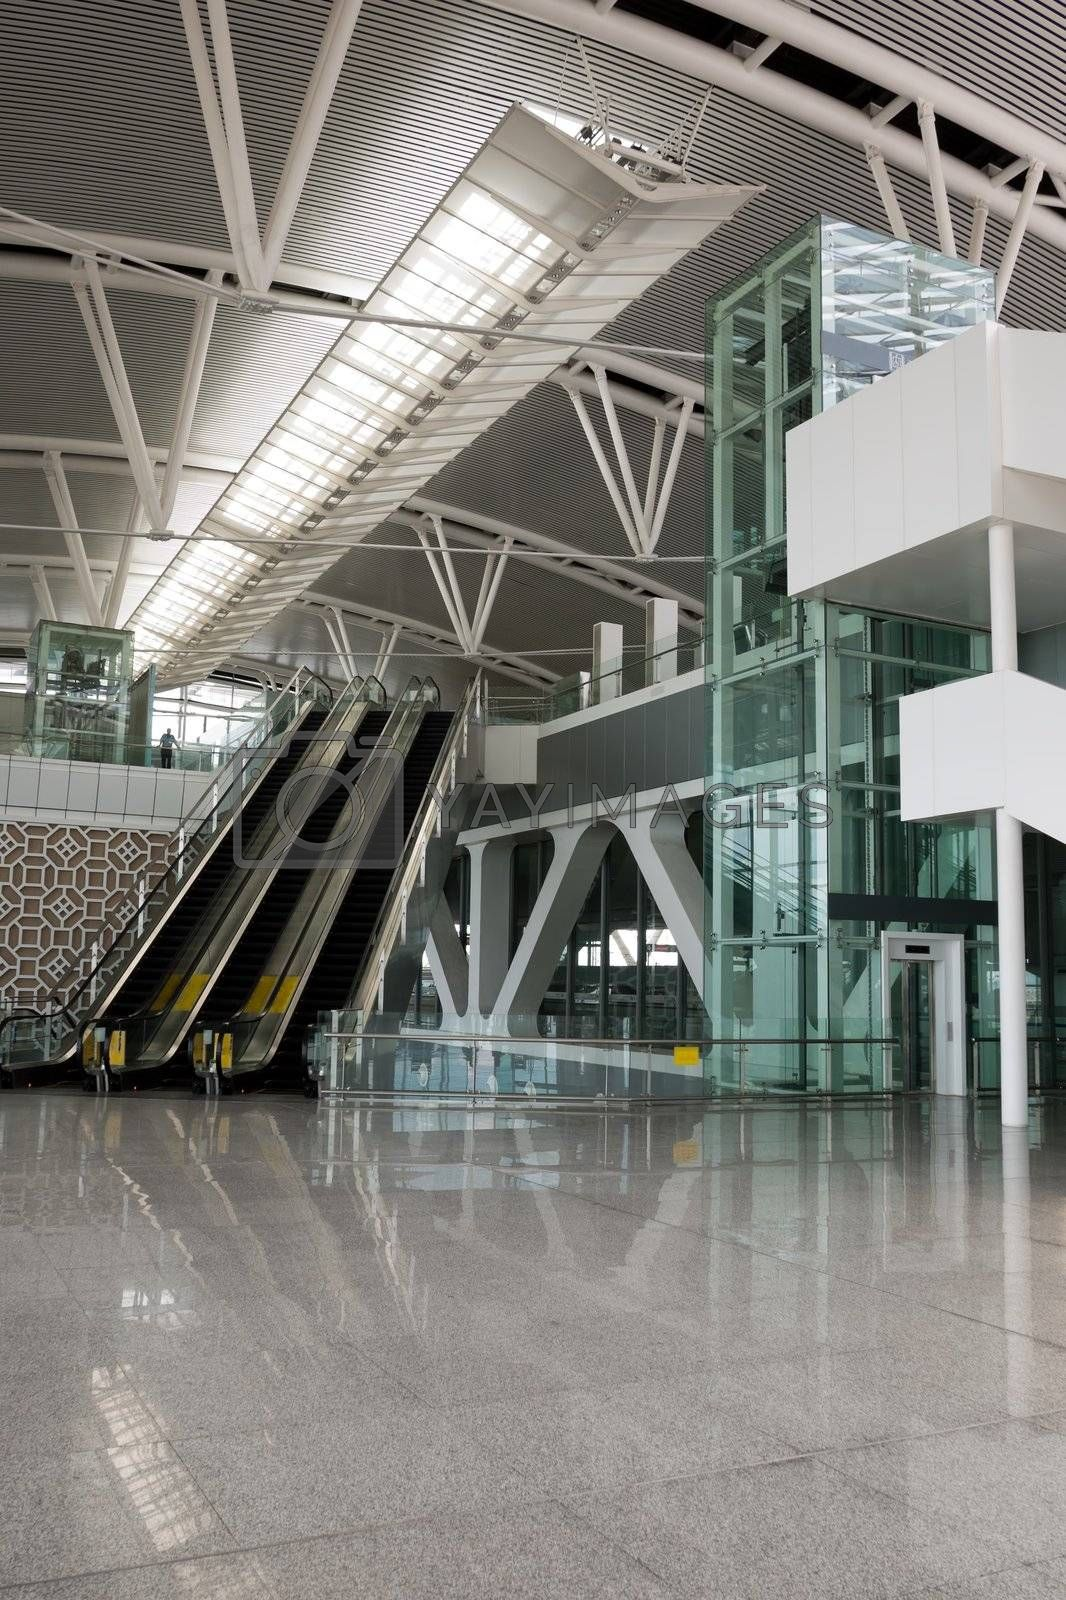 Modern business building interior with escalators and elevator